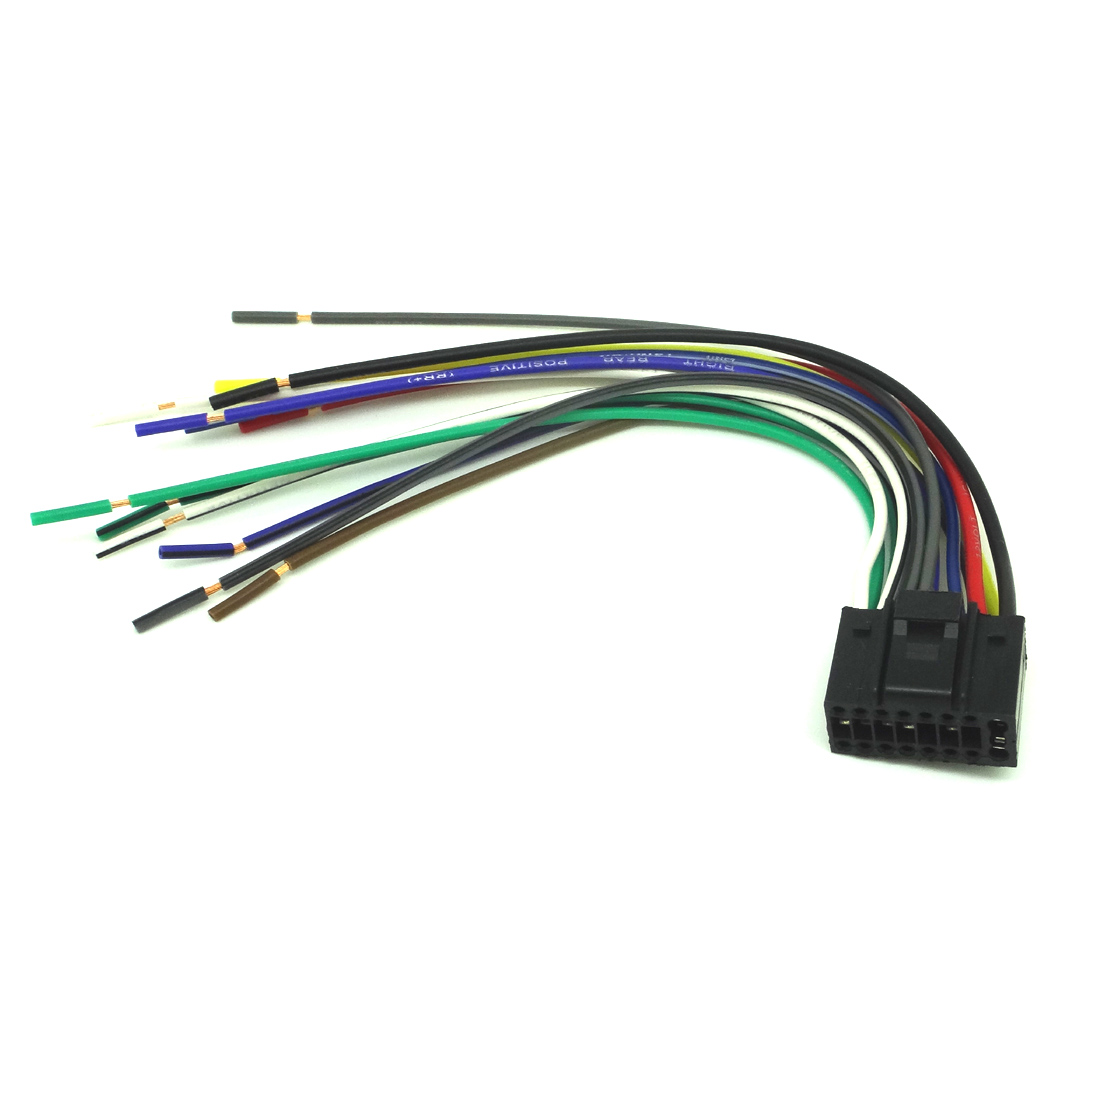 hight resolution of player 16 pin radio car audio stereo wire harness for kenwood kdc rh aliexpress com kenwood kdc 217 manual kenwood kdc 135 wiring diagram